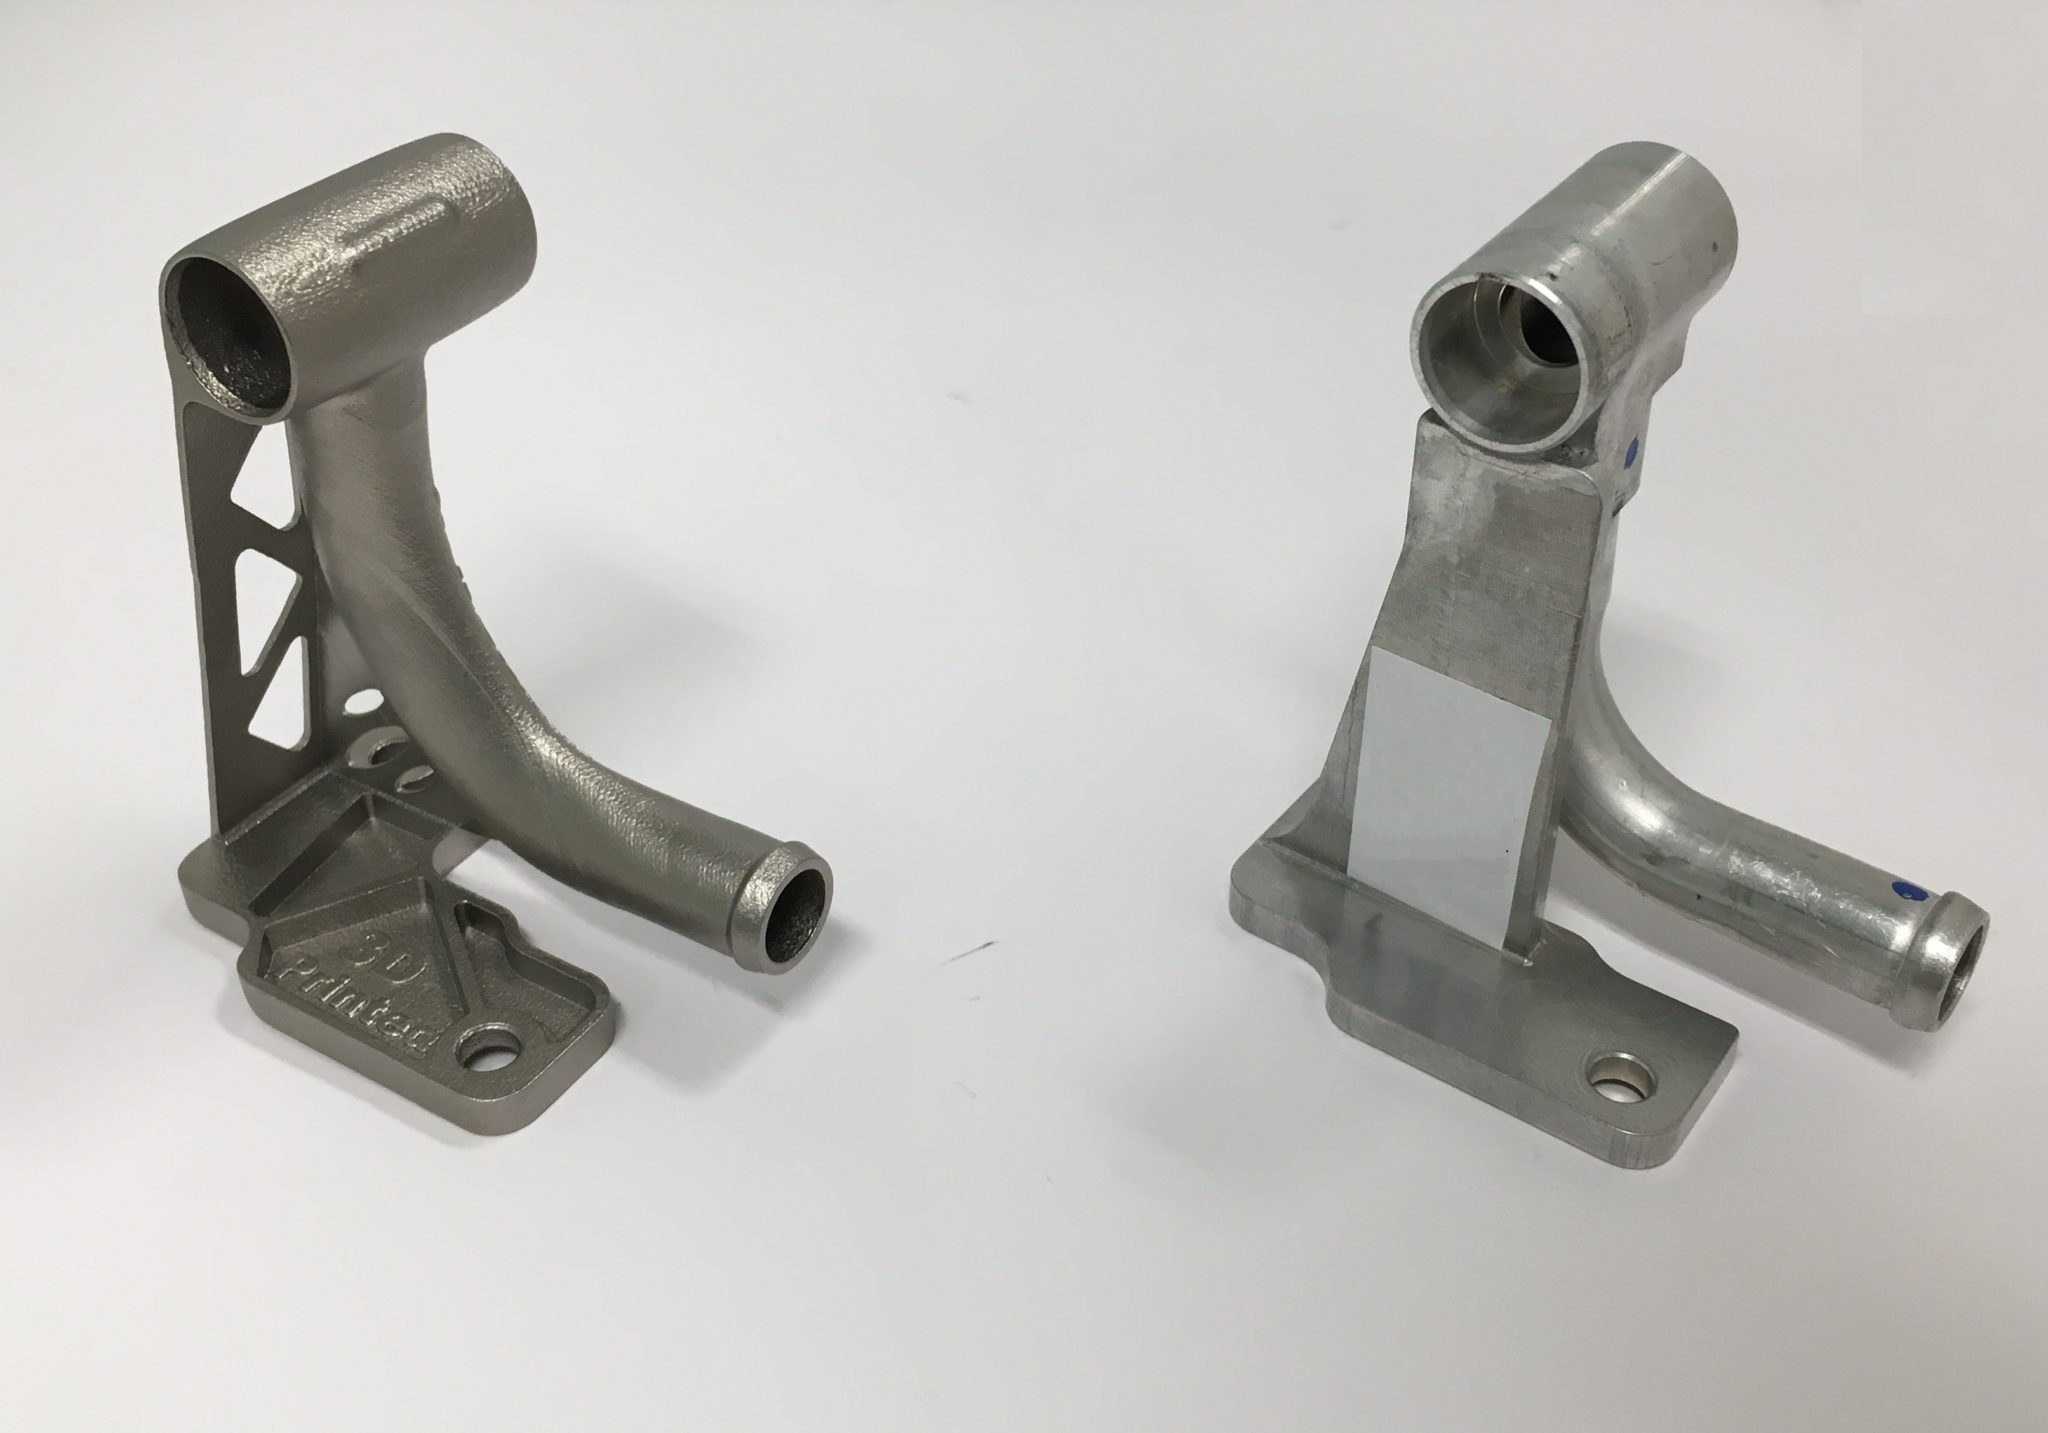 Redesign of an automotive bracket and printed in stainless steel